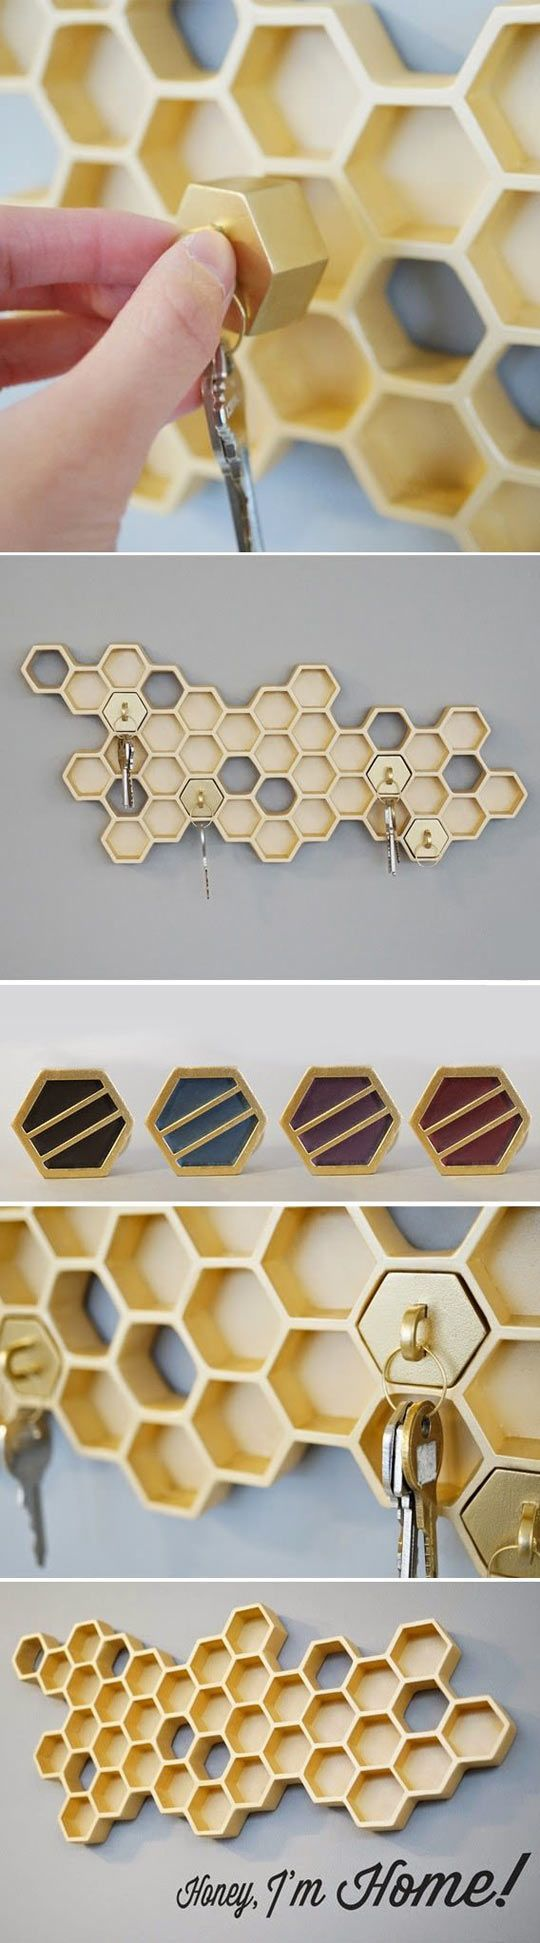 """Honey, I'm Home: Modular Keychain Organization System"" (article), on dornob. I need this in my life."